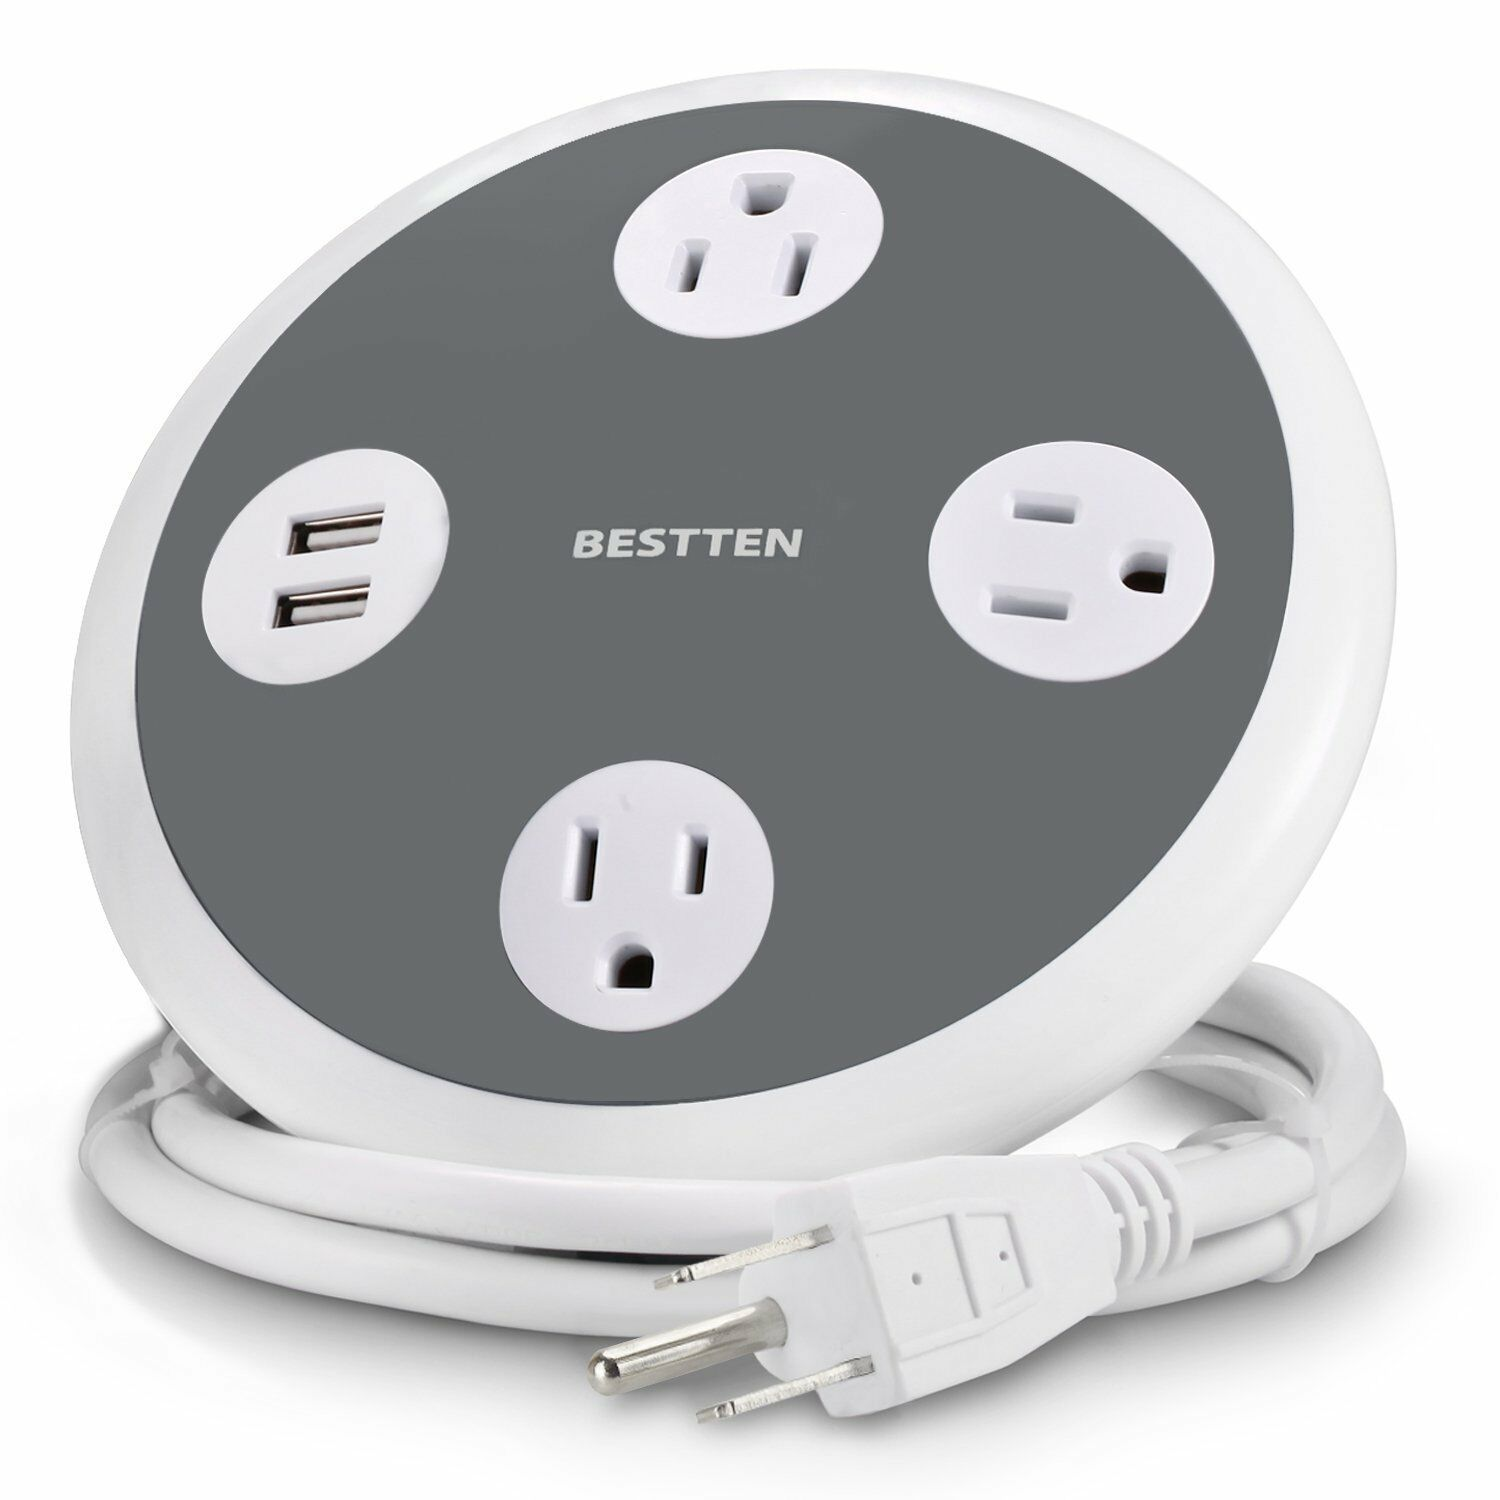 BESTTEN Power Strip Surge Protector with 2 USB Charging Port